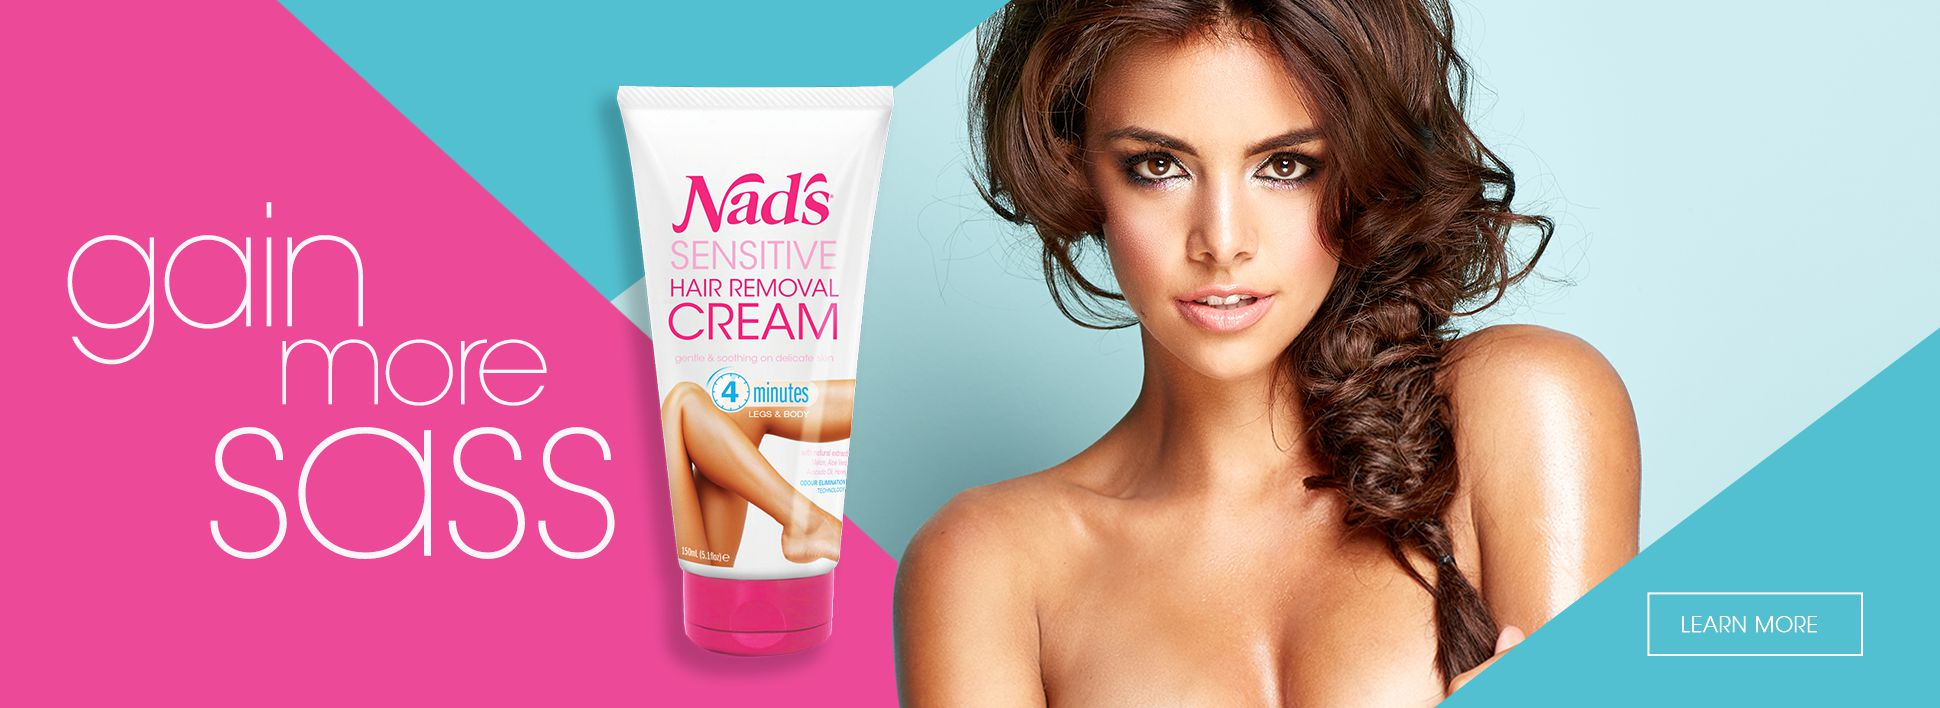 Nad's New Sensitive Hair Removal Cream - Gain More Sass